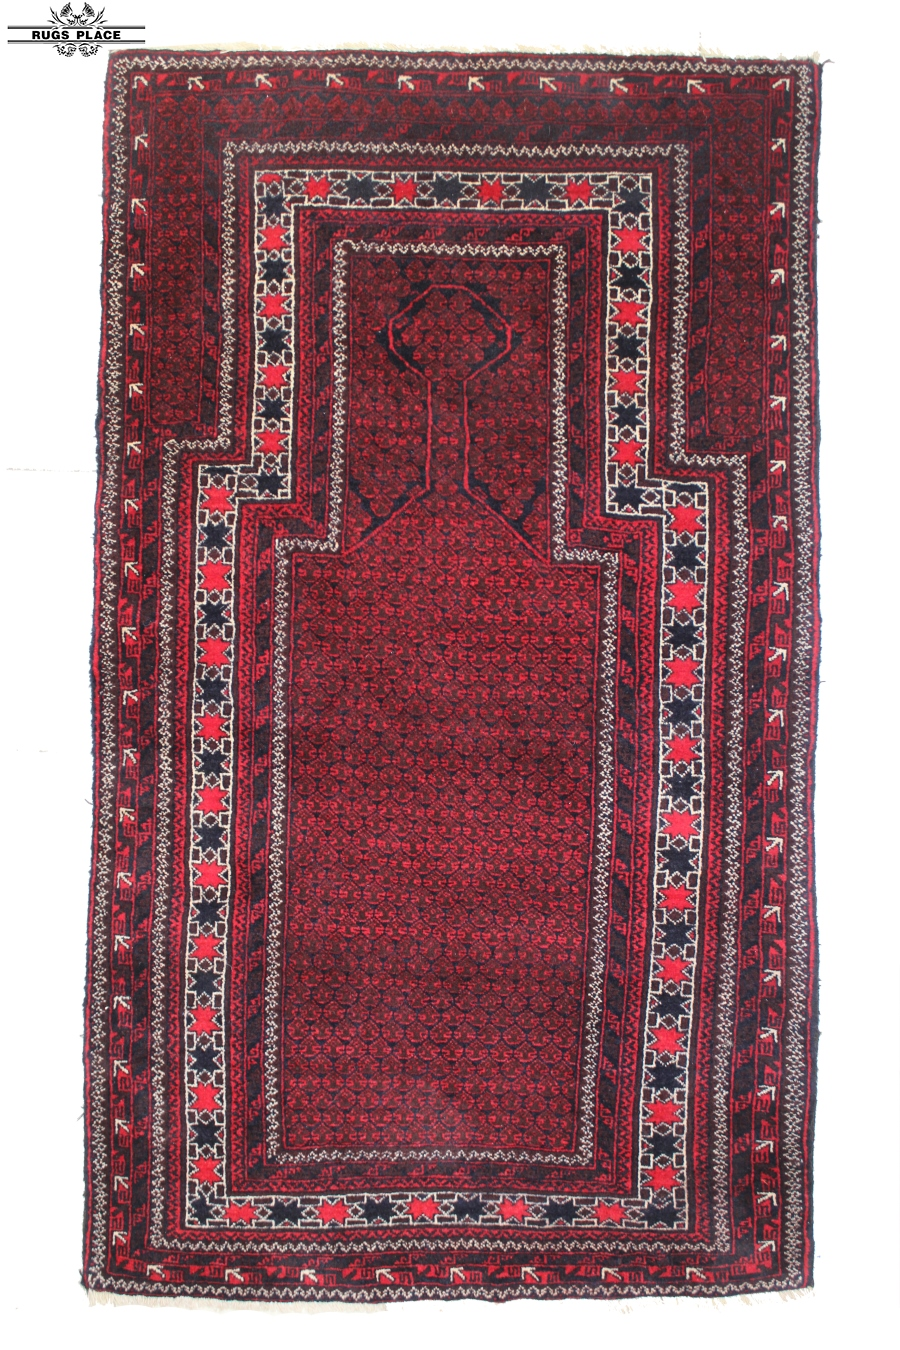 persian rug4 8 x 2 8 ft 149 x 88 cm rugs place. Black Bedroom Furniture Sets. Home Design Ideas